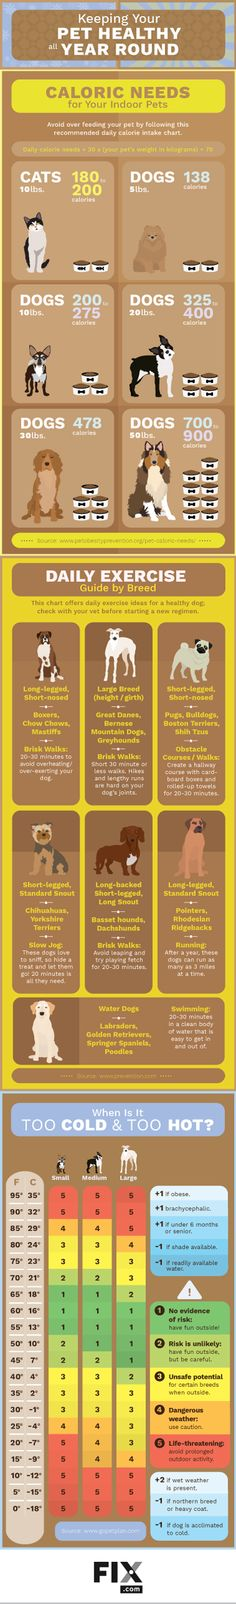 Check out this infographic on How to Keep Your Pet Healthy All Year Round